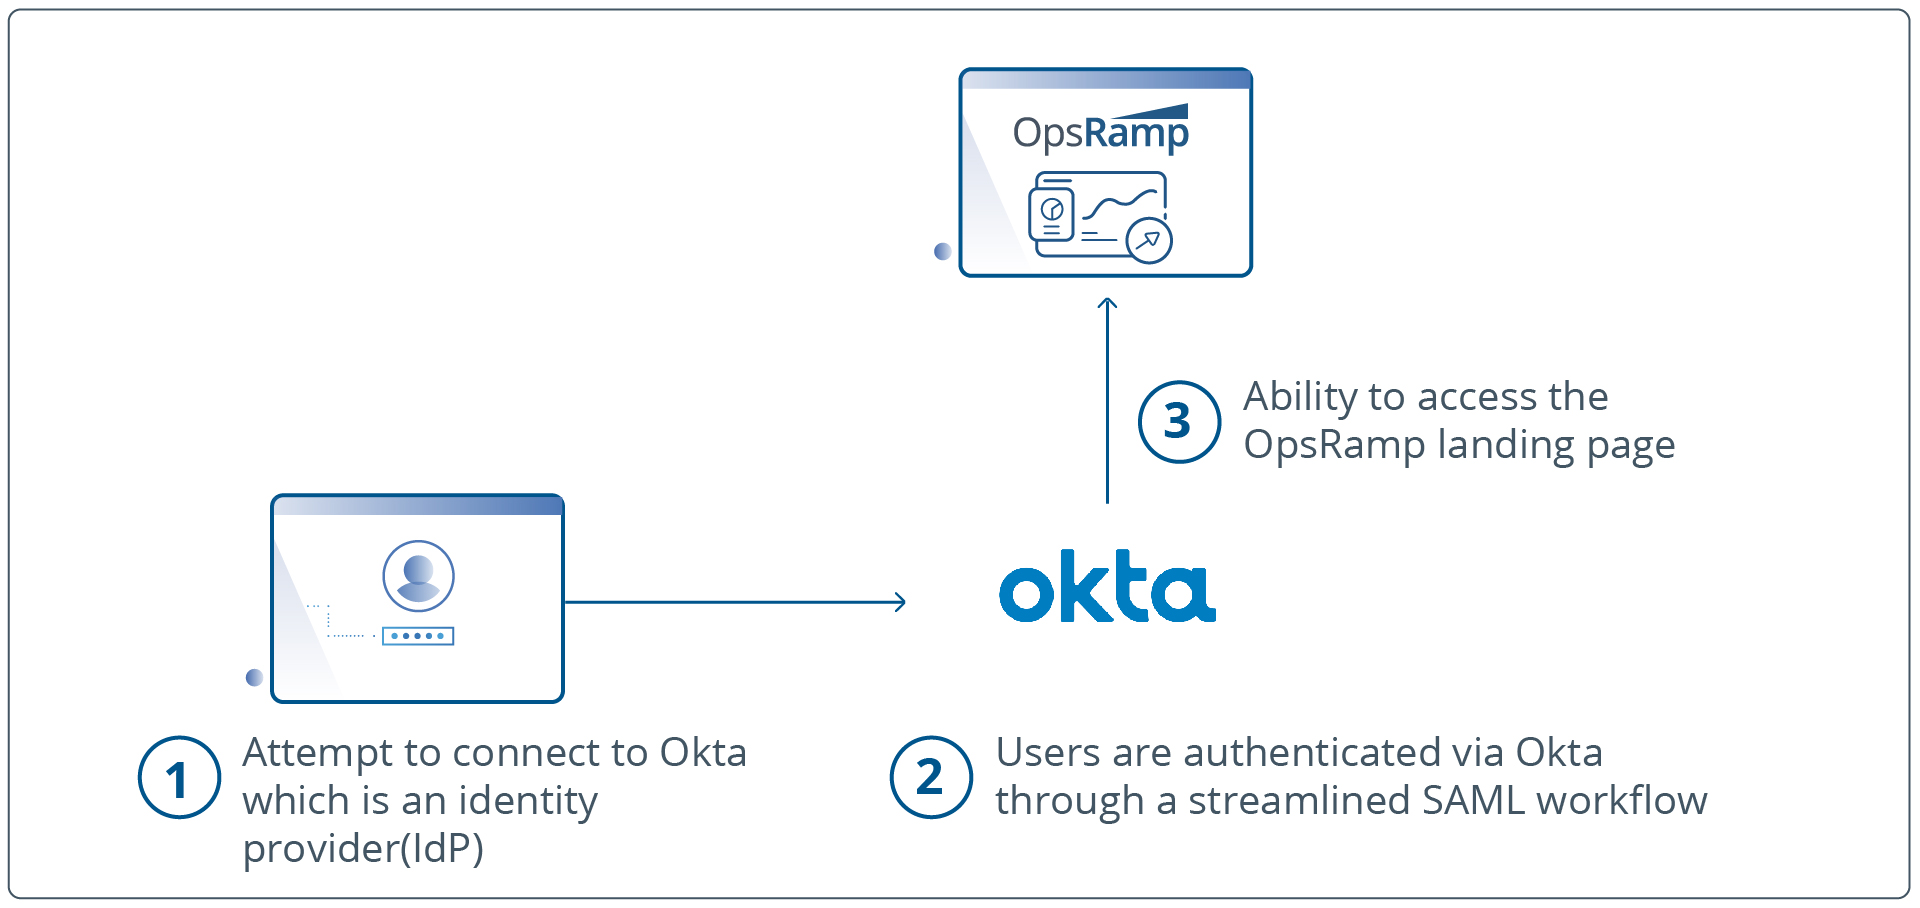 OpsRamp-Okta-Authentication-02